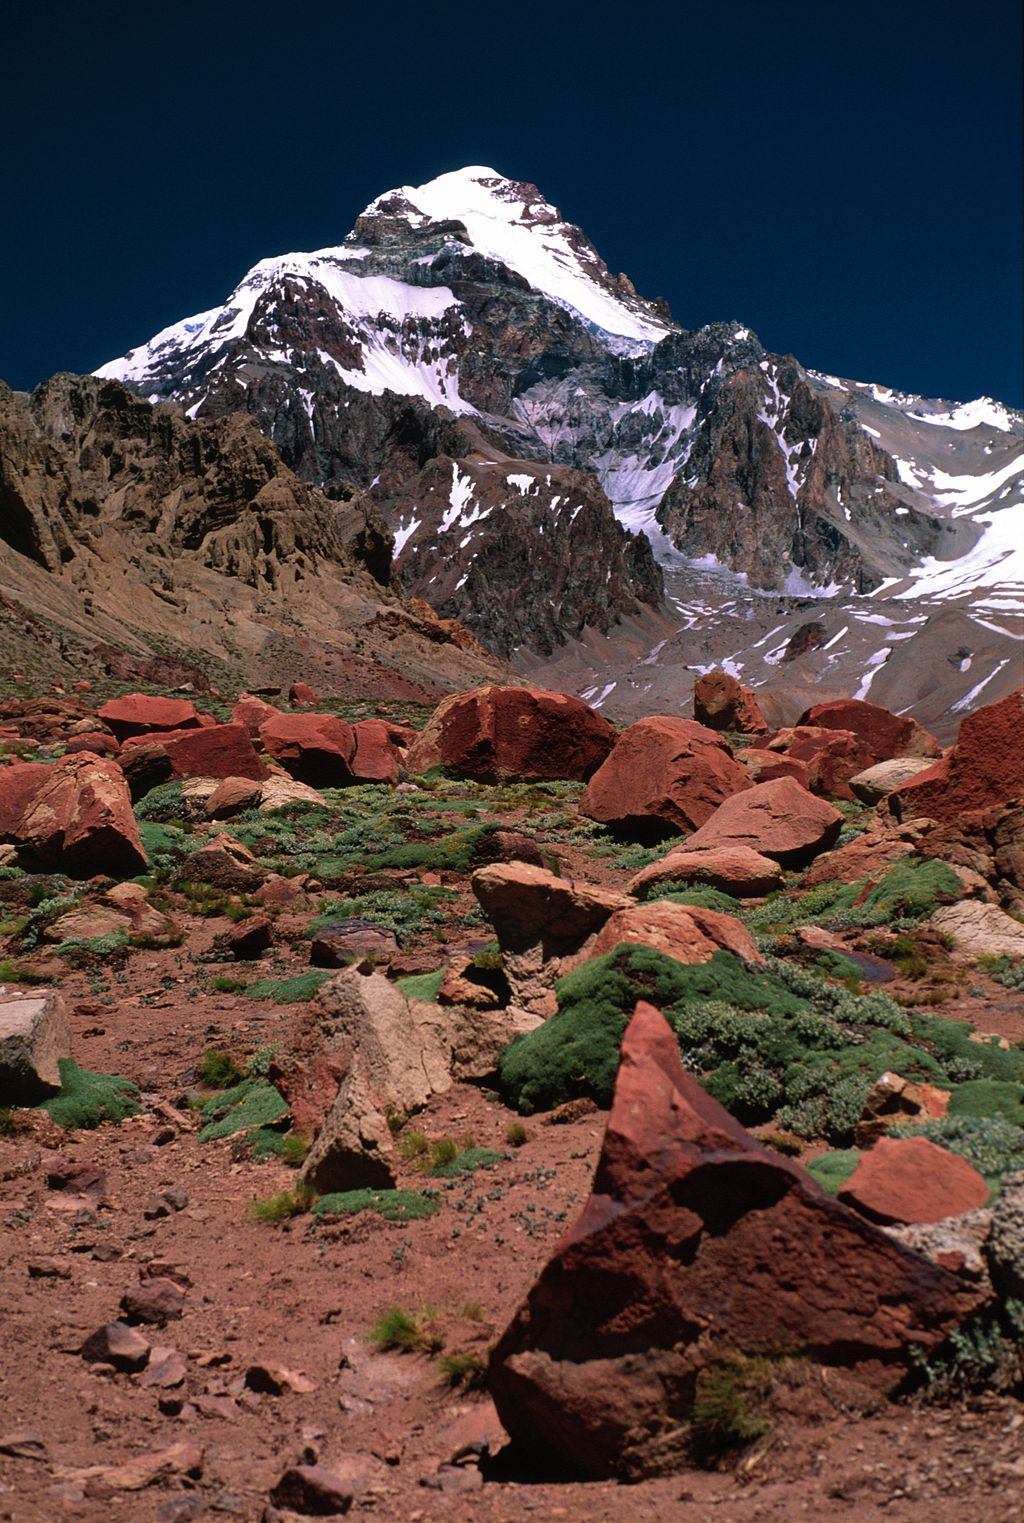 By  Winky  from Oxford, UK (Flickr) CC-BY-2.0,  Aconcagua Mountain from base, Argentina